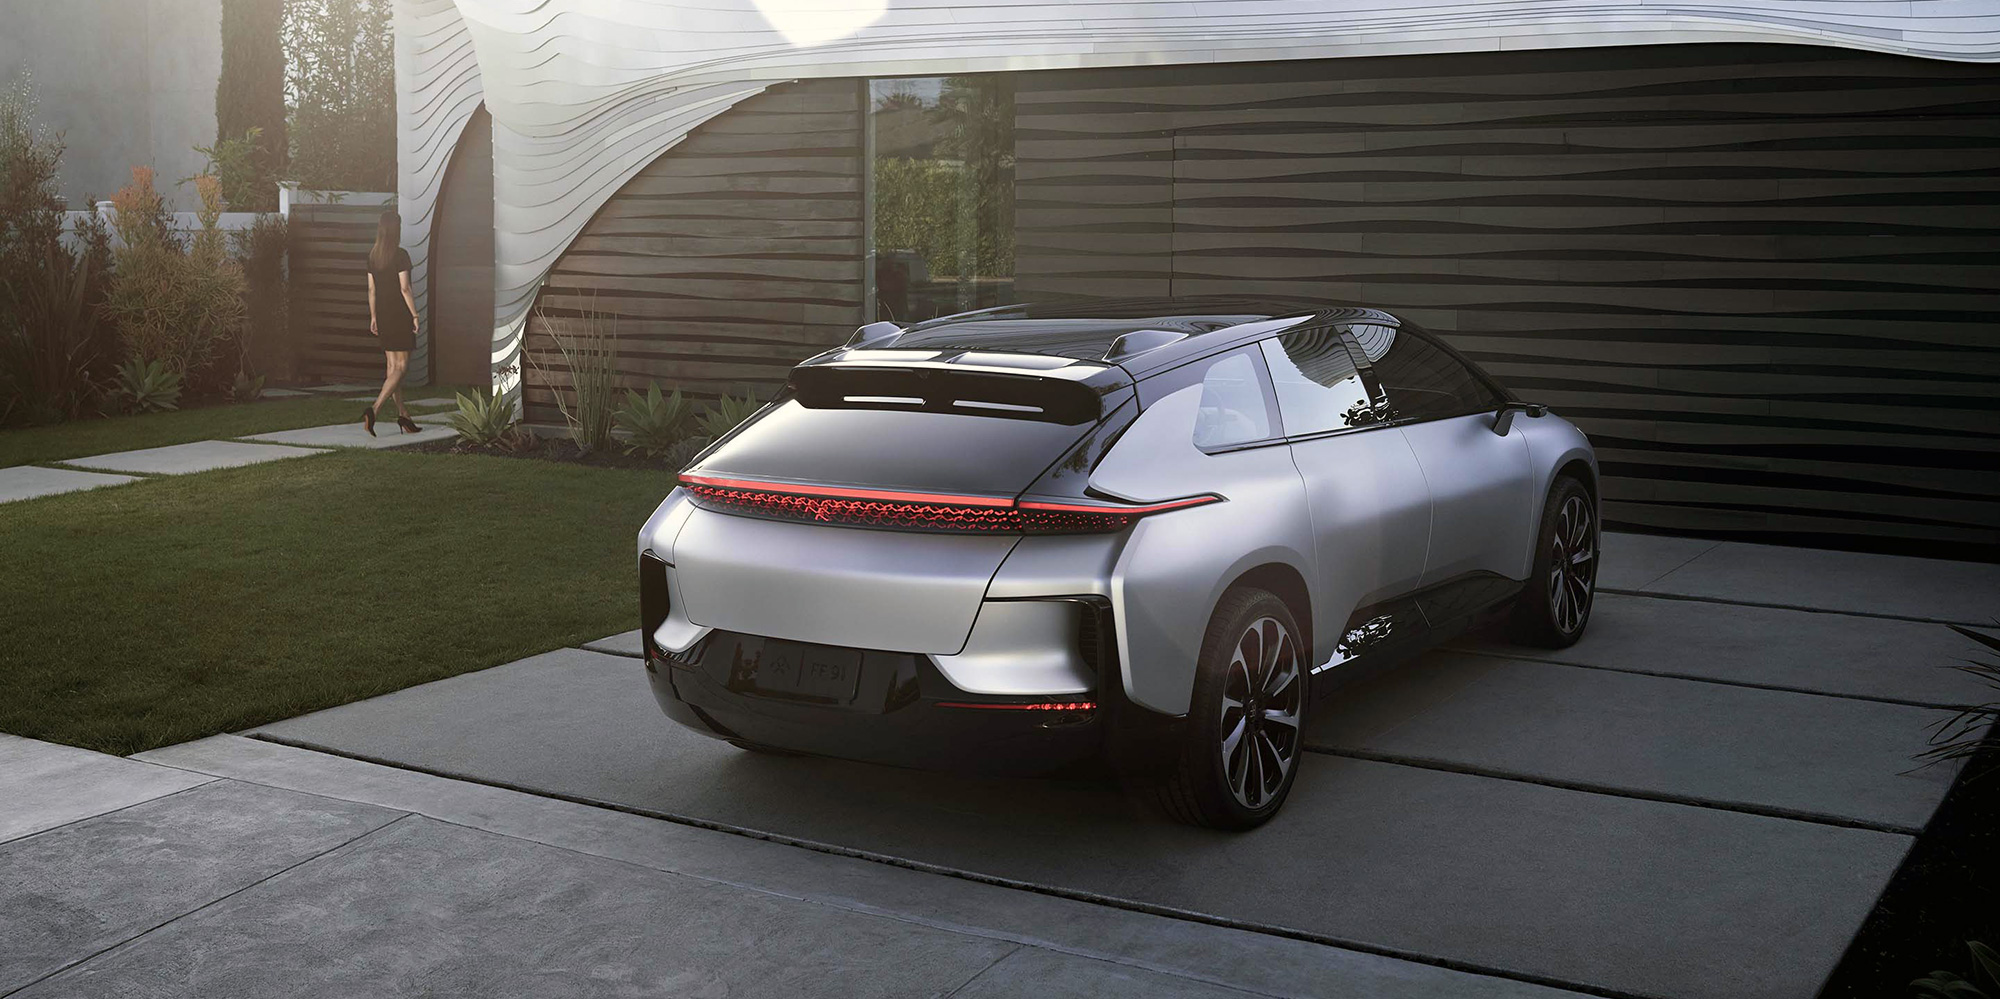 Faraday Future's FF 91